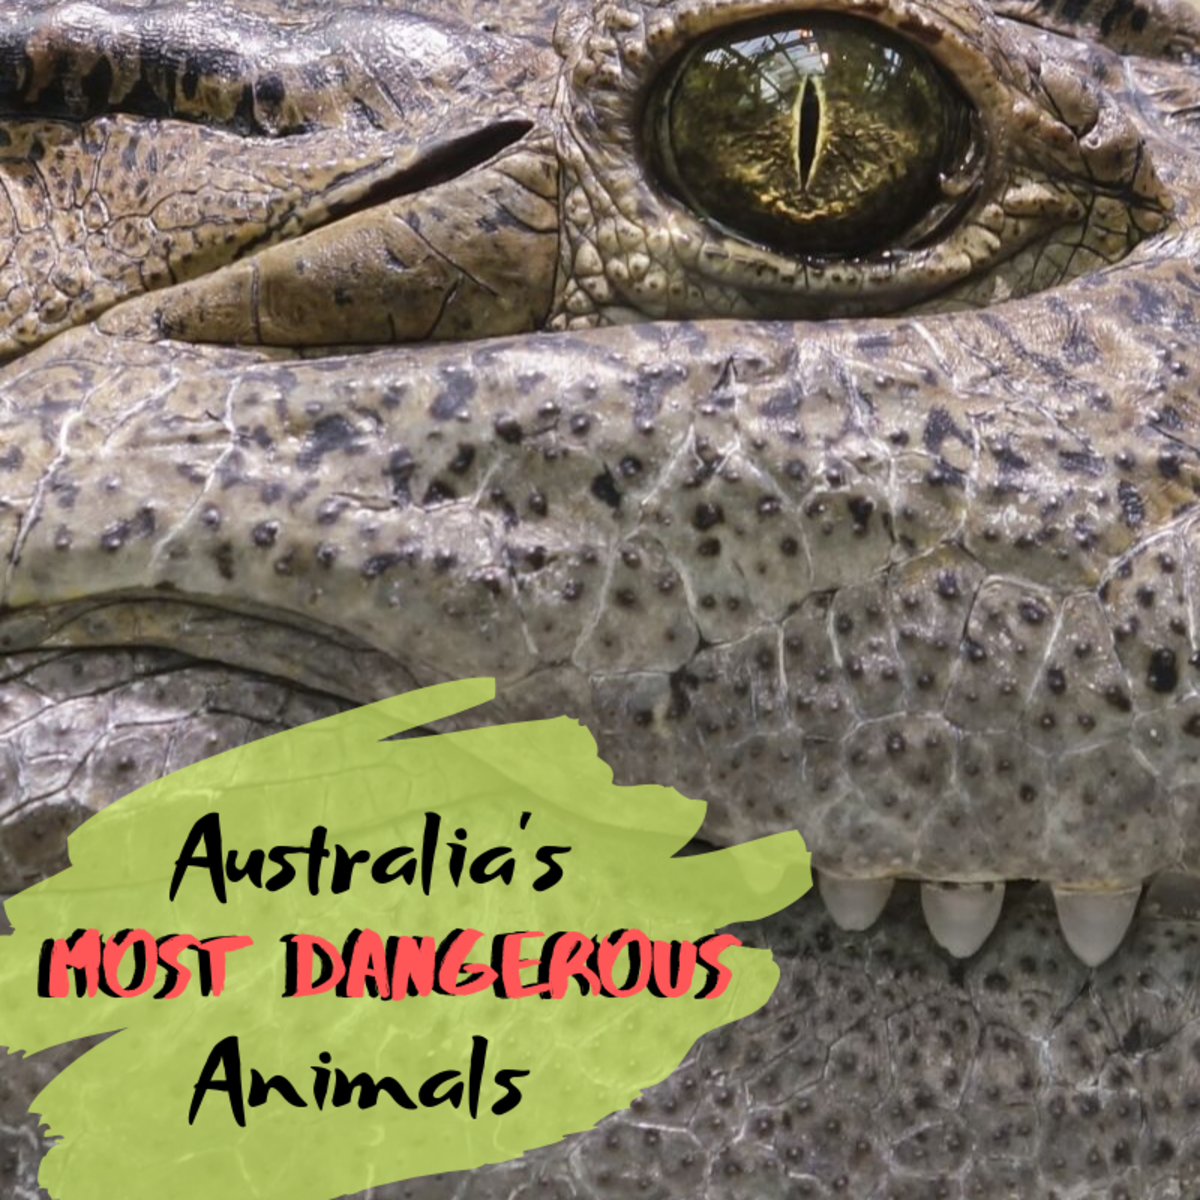 Top 10 Most Dangerous Animals in Australia